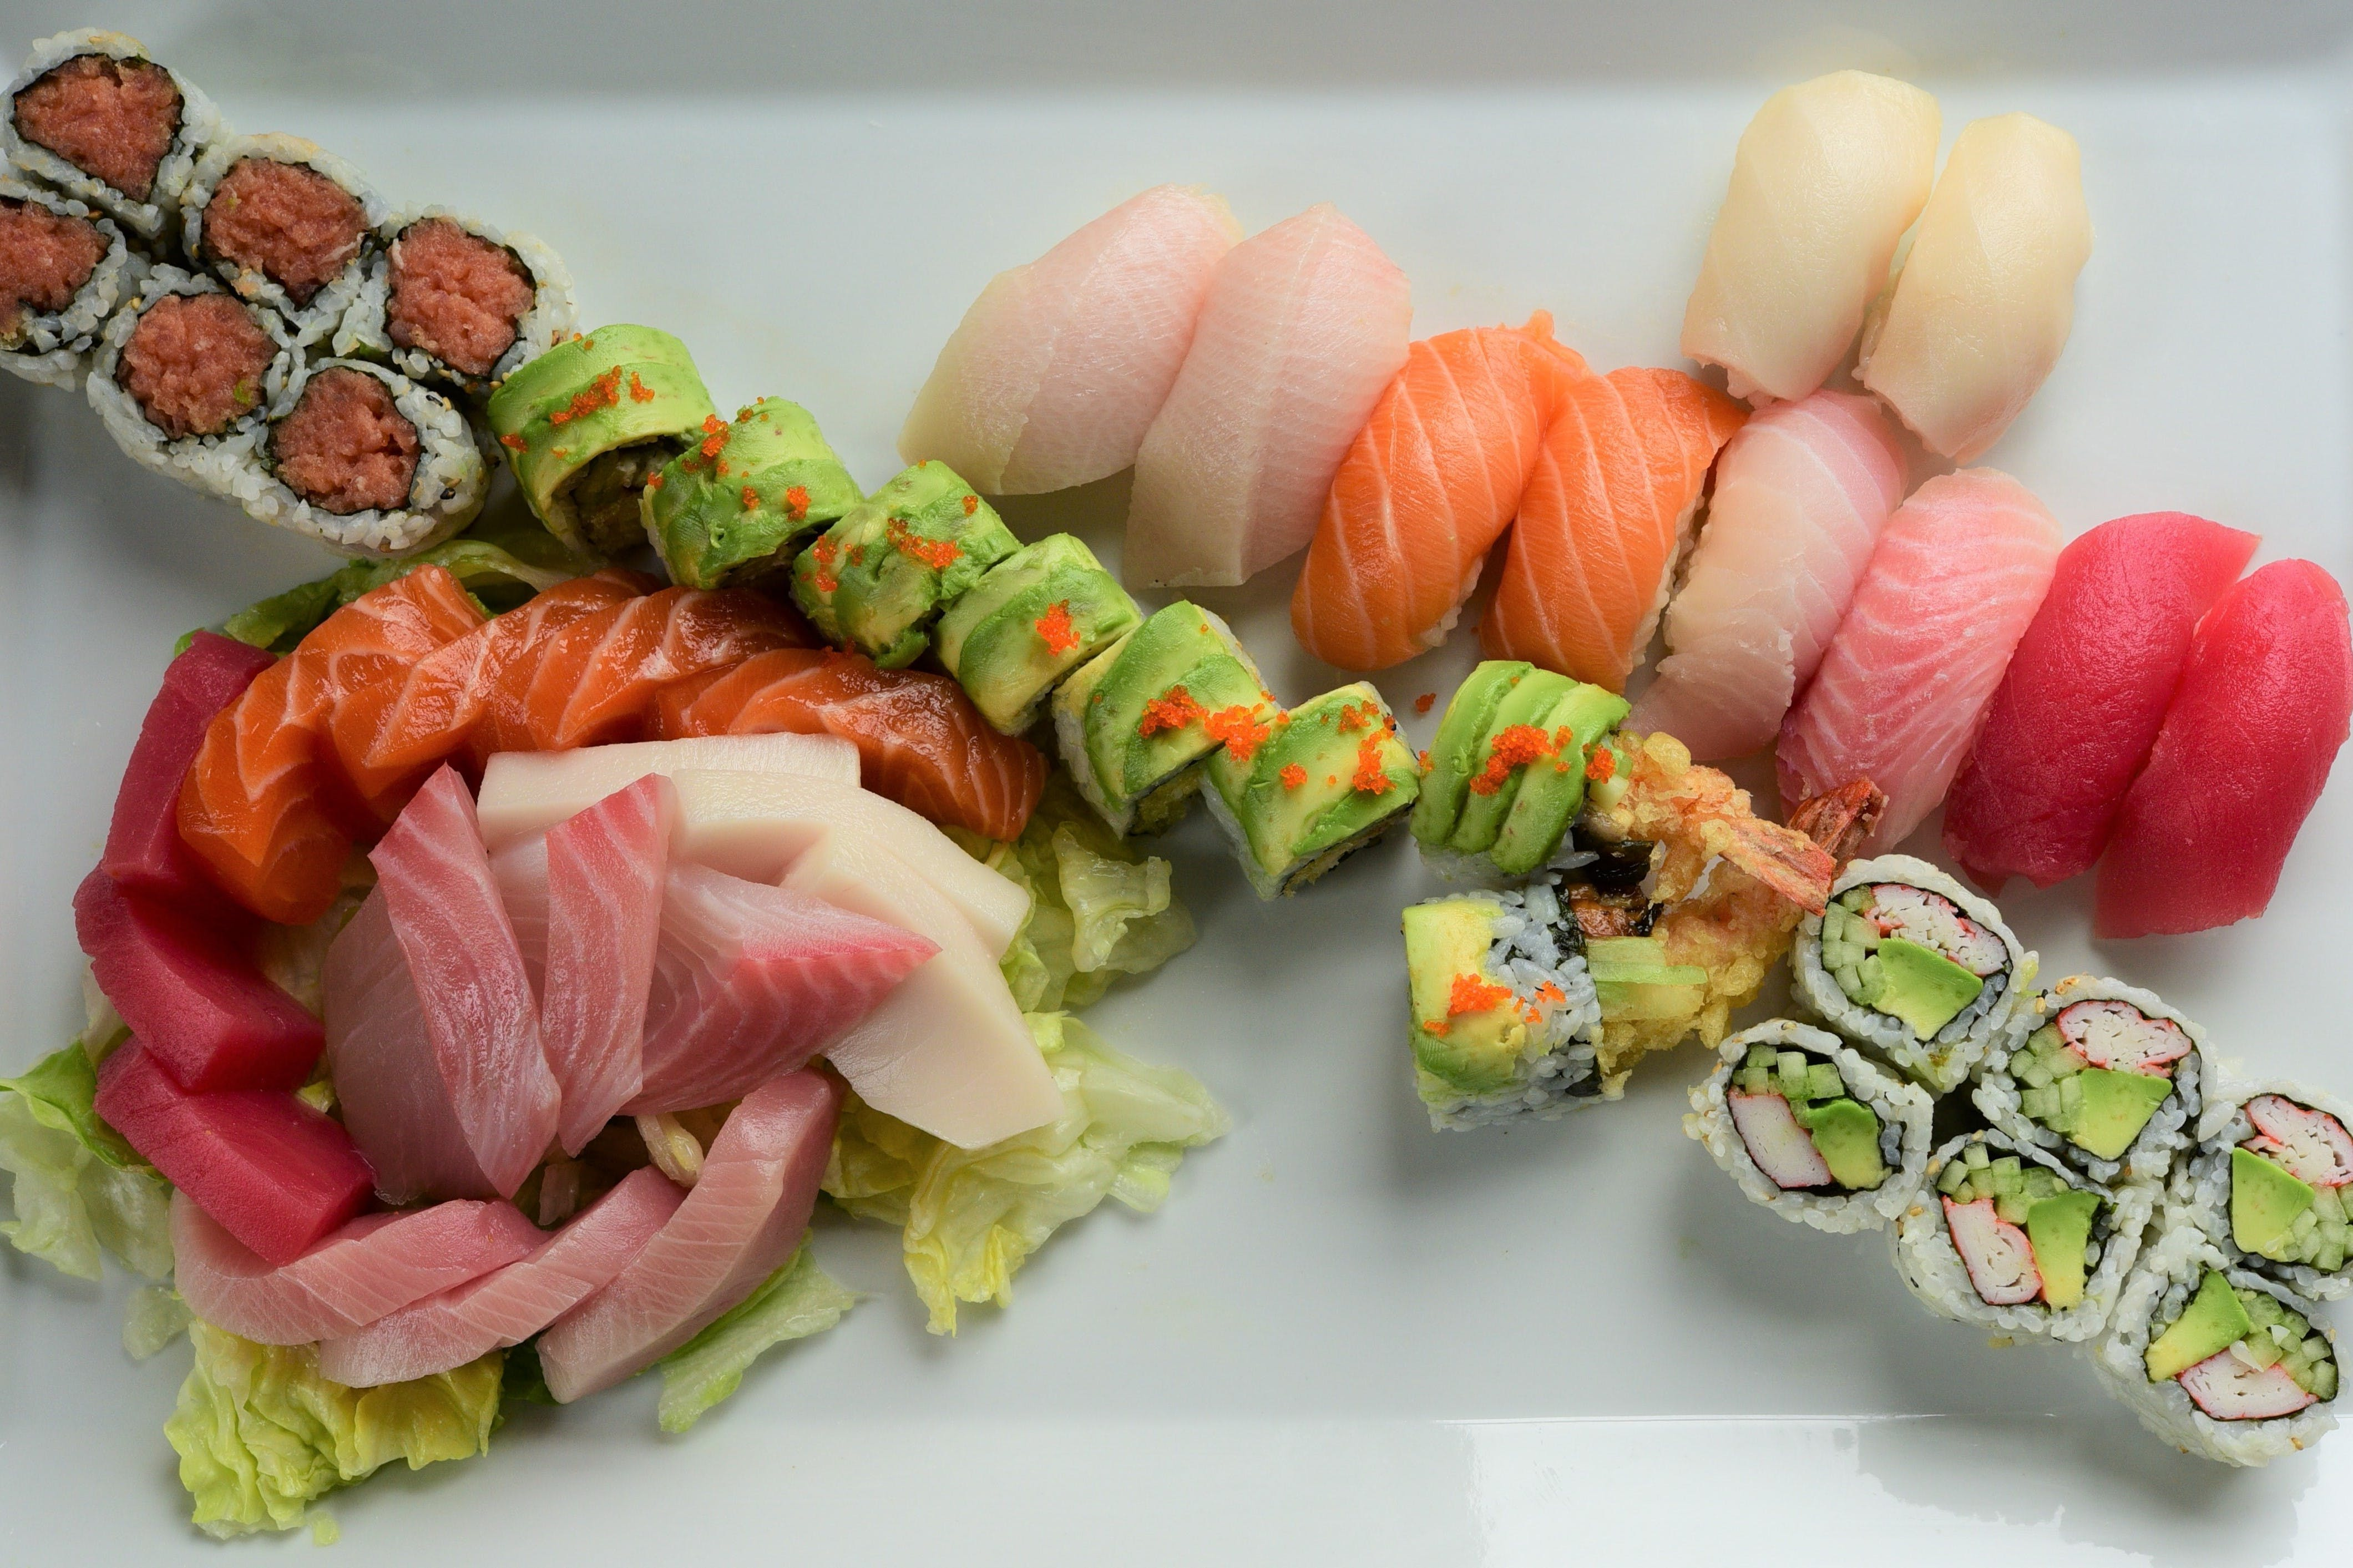 Party Platter from Fin Sushi in Madison, WI